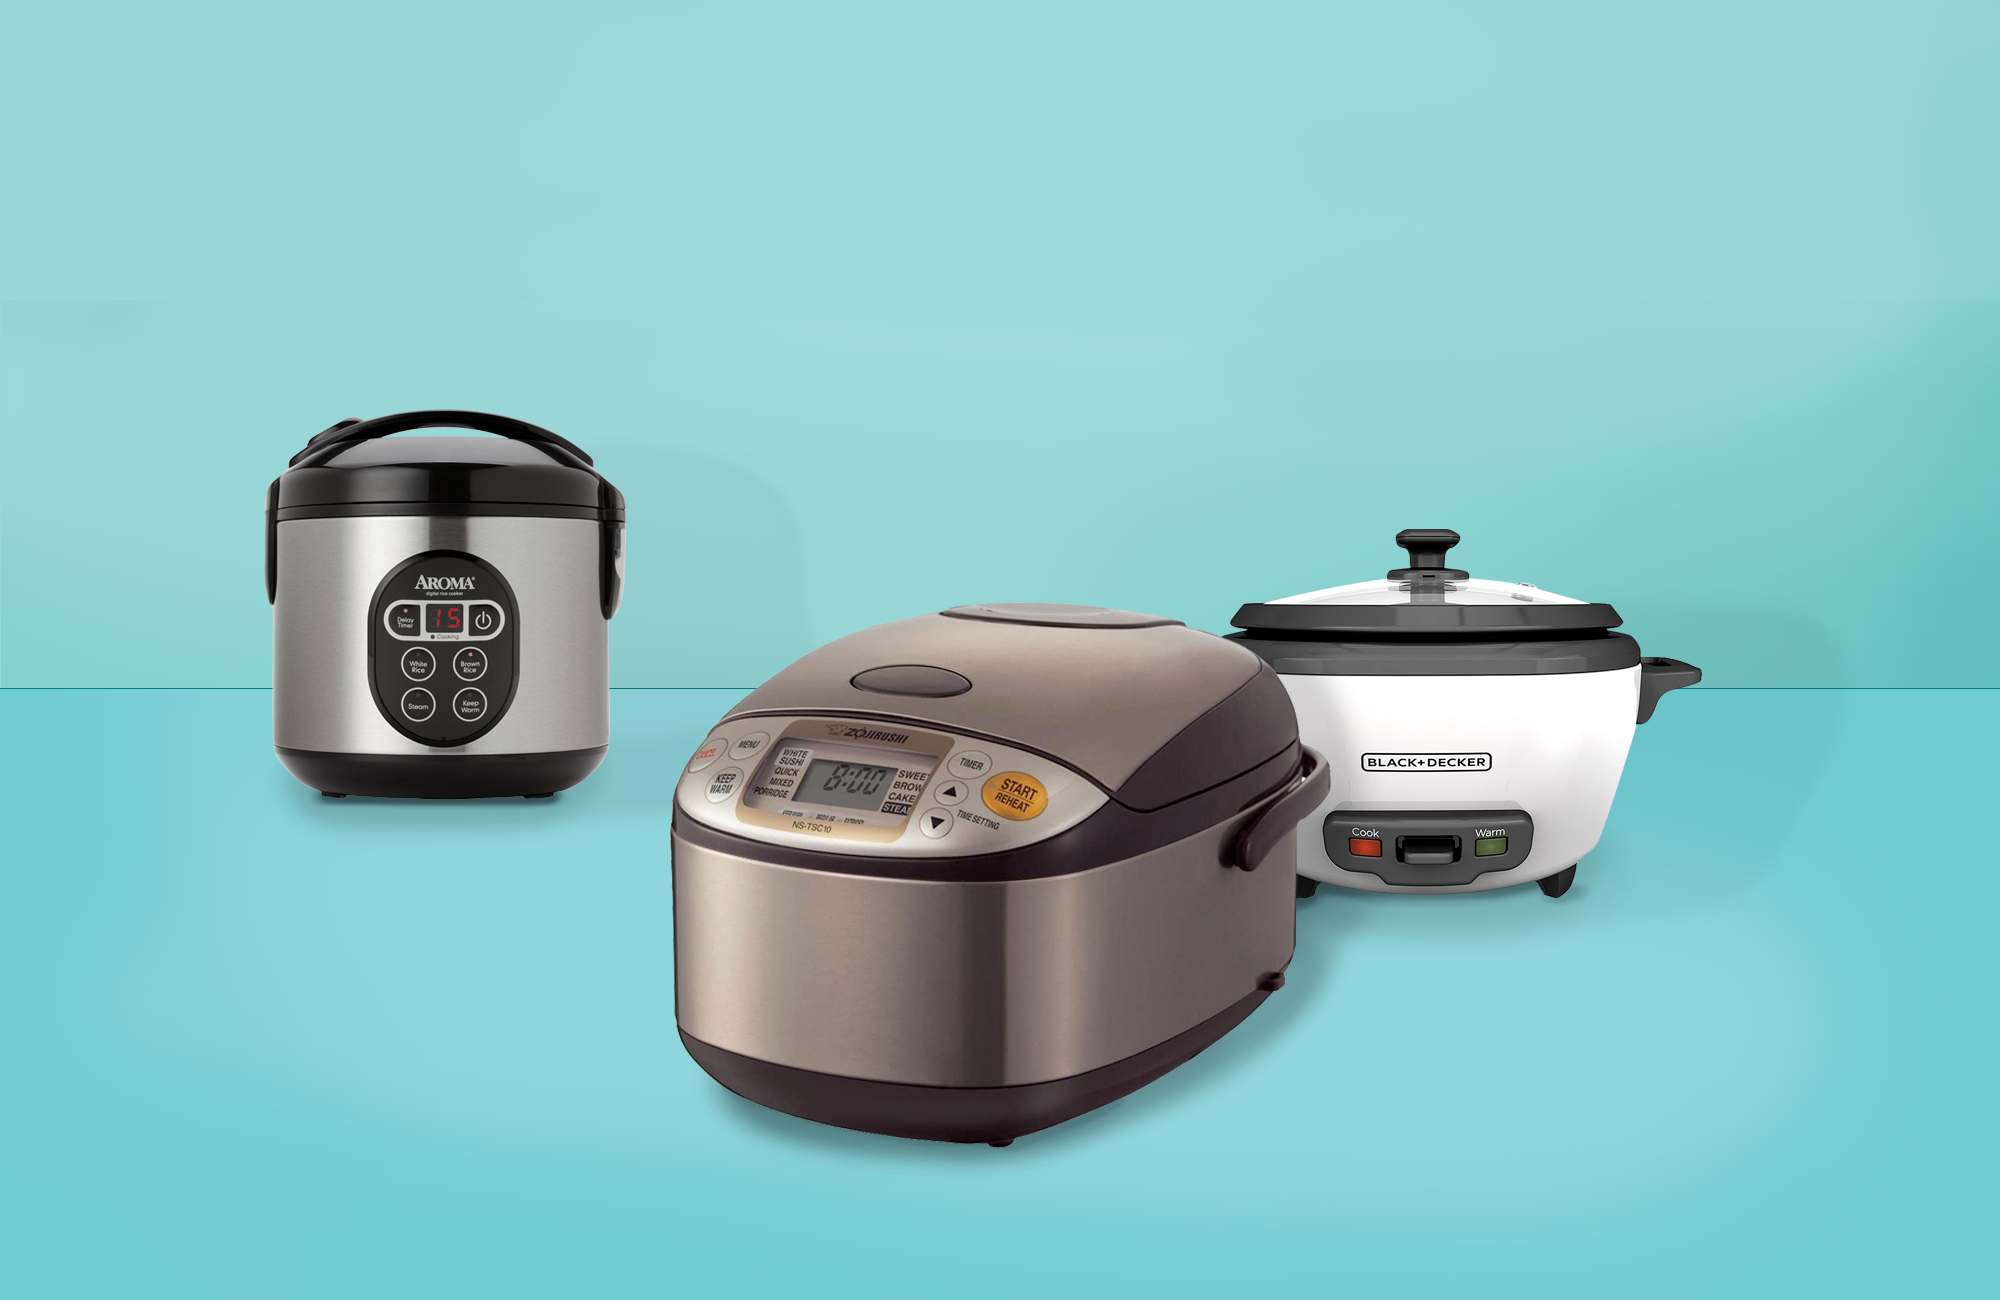 8 Best Rice Cookers - Top Rated Rice Cookers